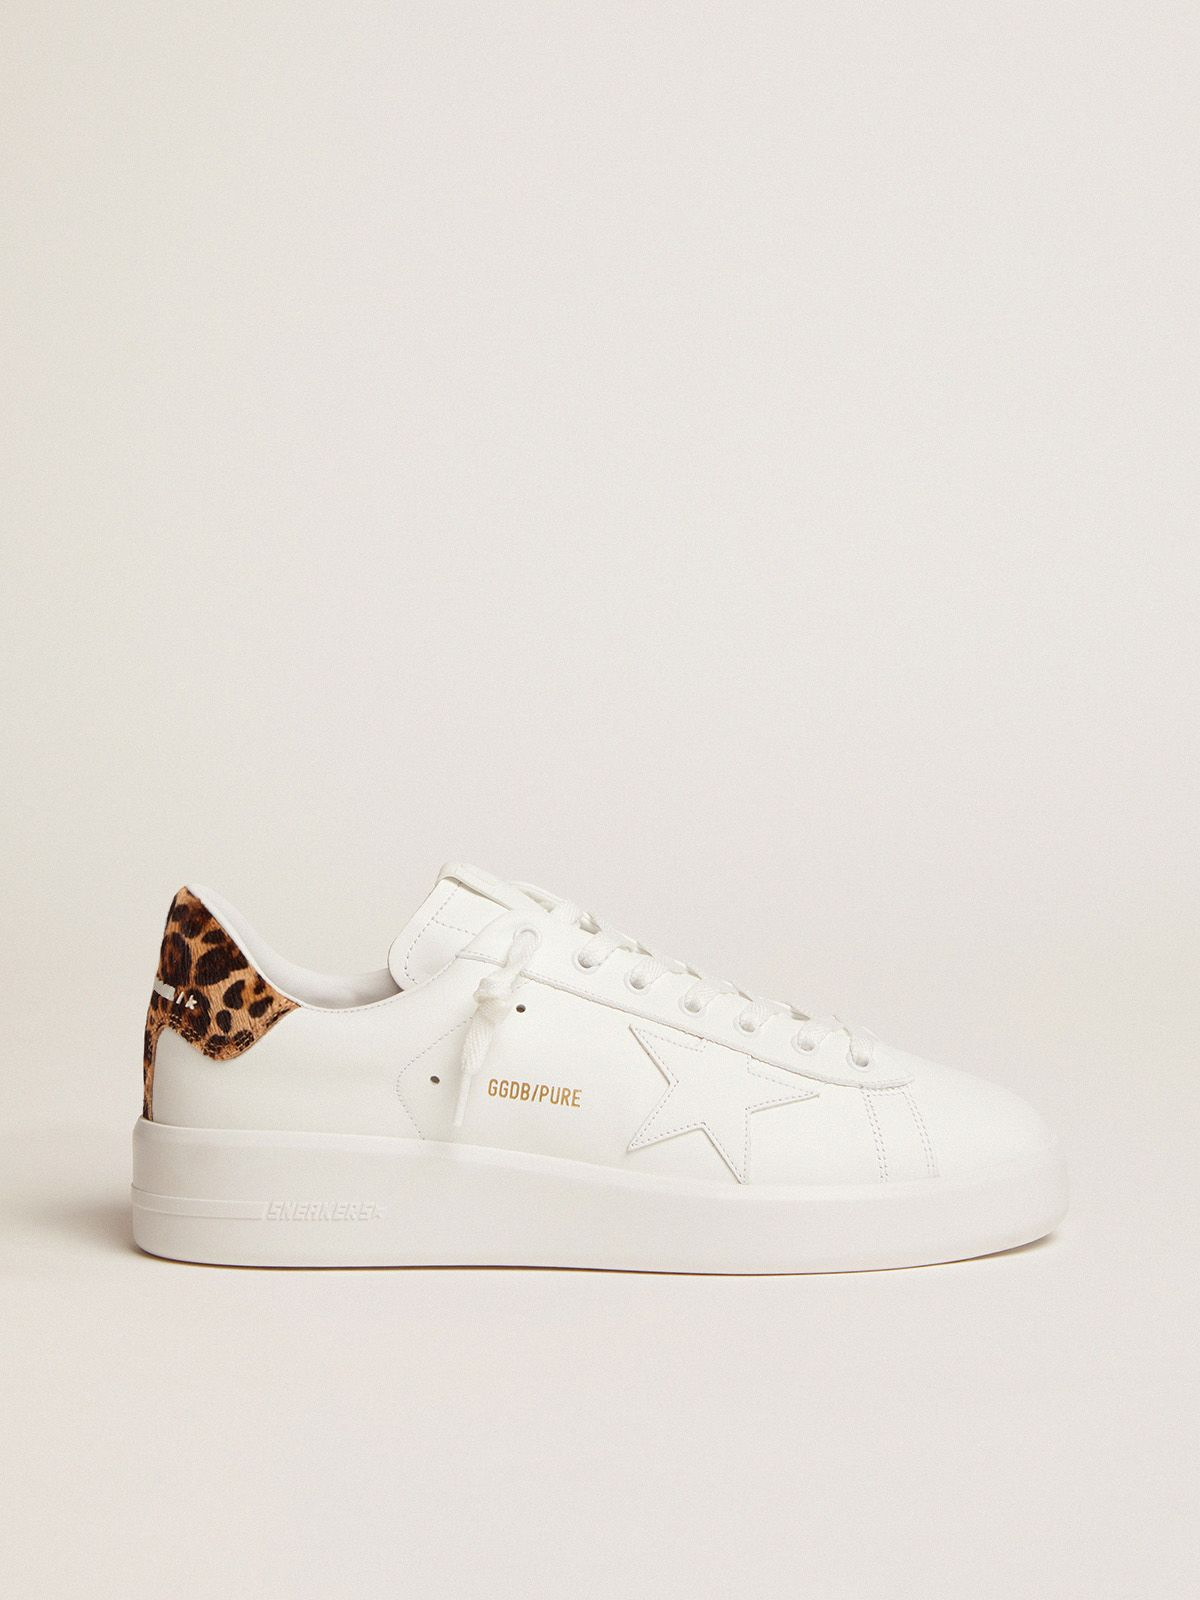 Women's PURESTAR sneakers with leopard-print heel tab